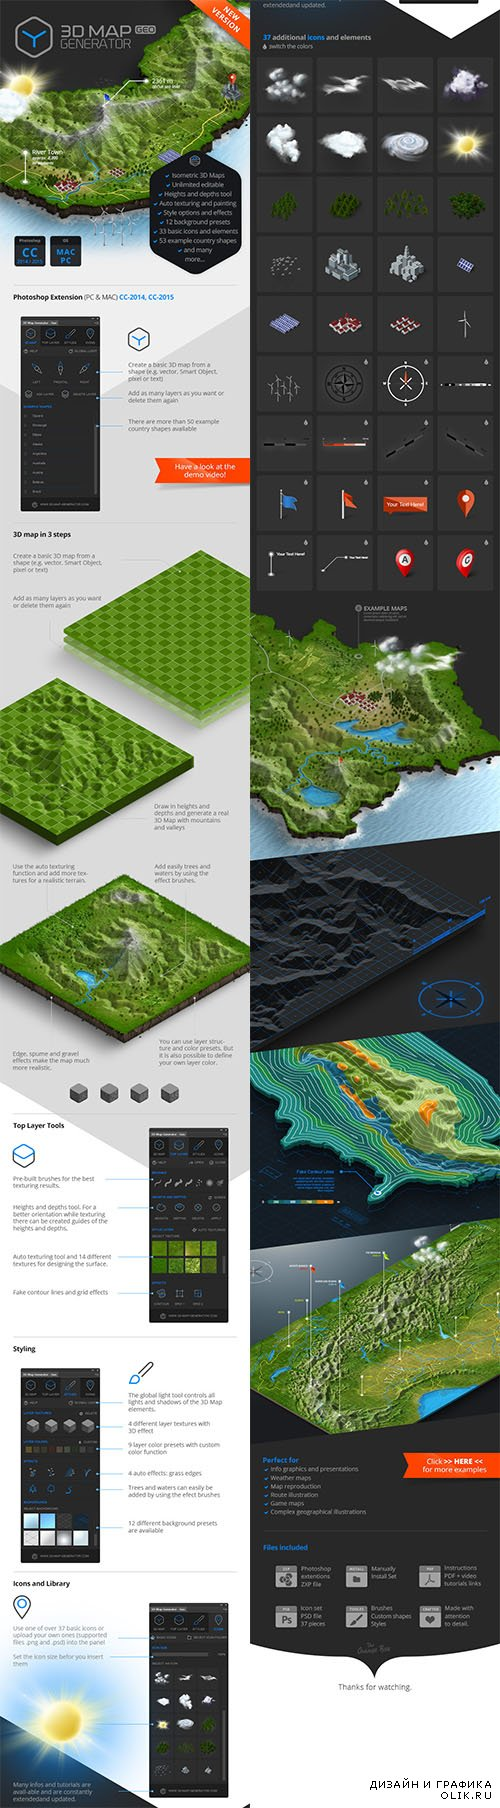 GraphicRiver - 3D Map Generator - GEO 12451004